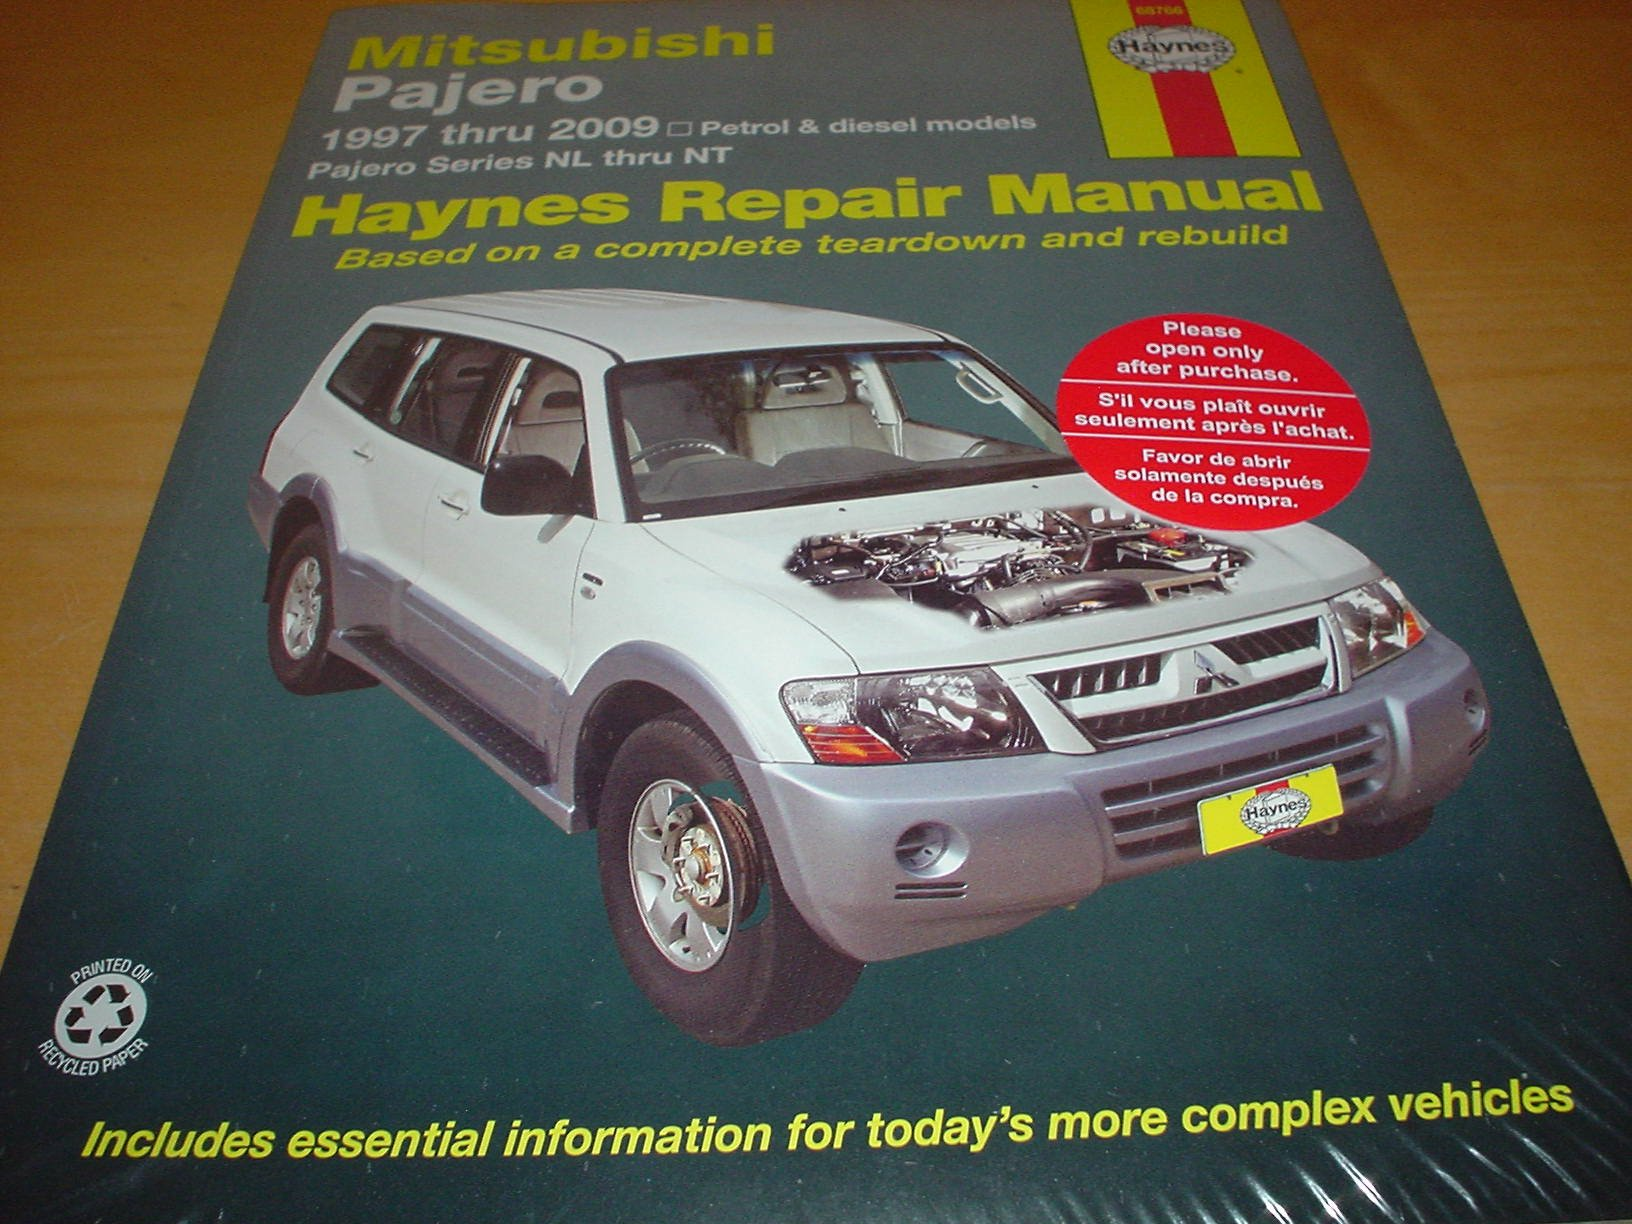 HAYNES MITSUBISHI SHOGUN / PAJERO Owners Manual Handbook 97- 09 3.0 6G72  3.5 6G74 3.8 6G75 LITRE PETROL ENGINES 2.8 4M40 3.2 4M41 L DIESEL:  Amazon.co.uk: ...